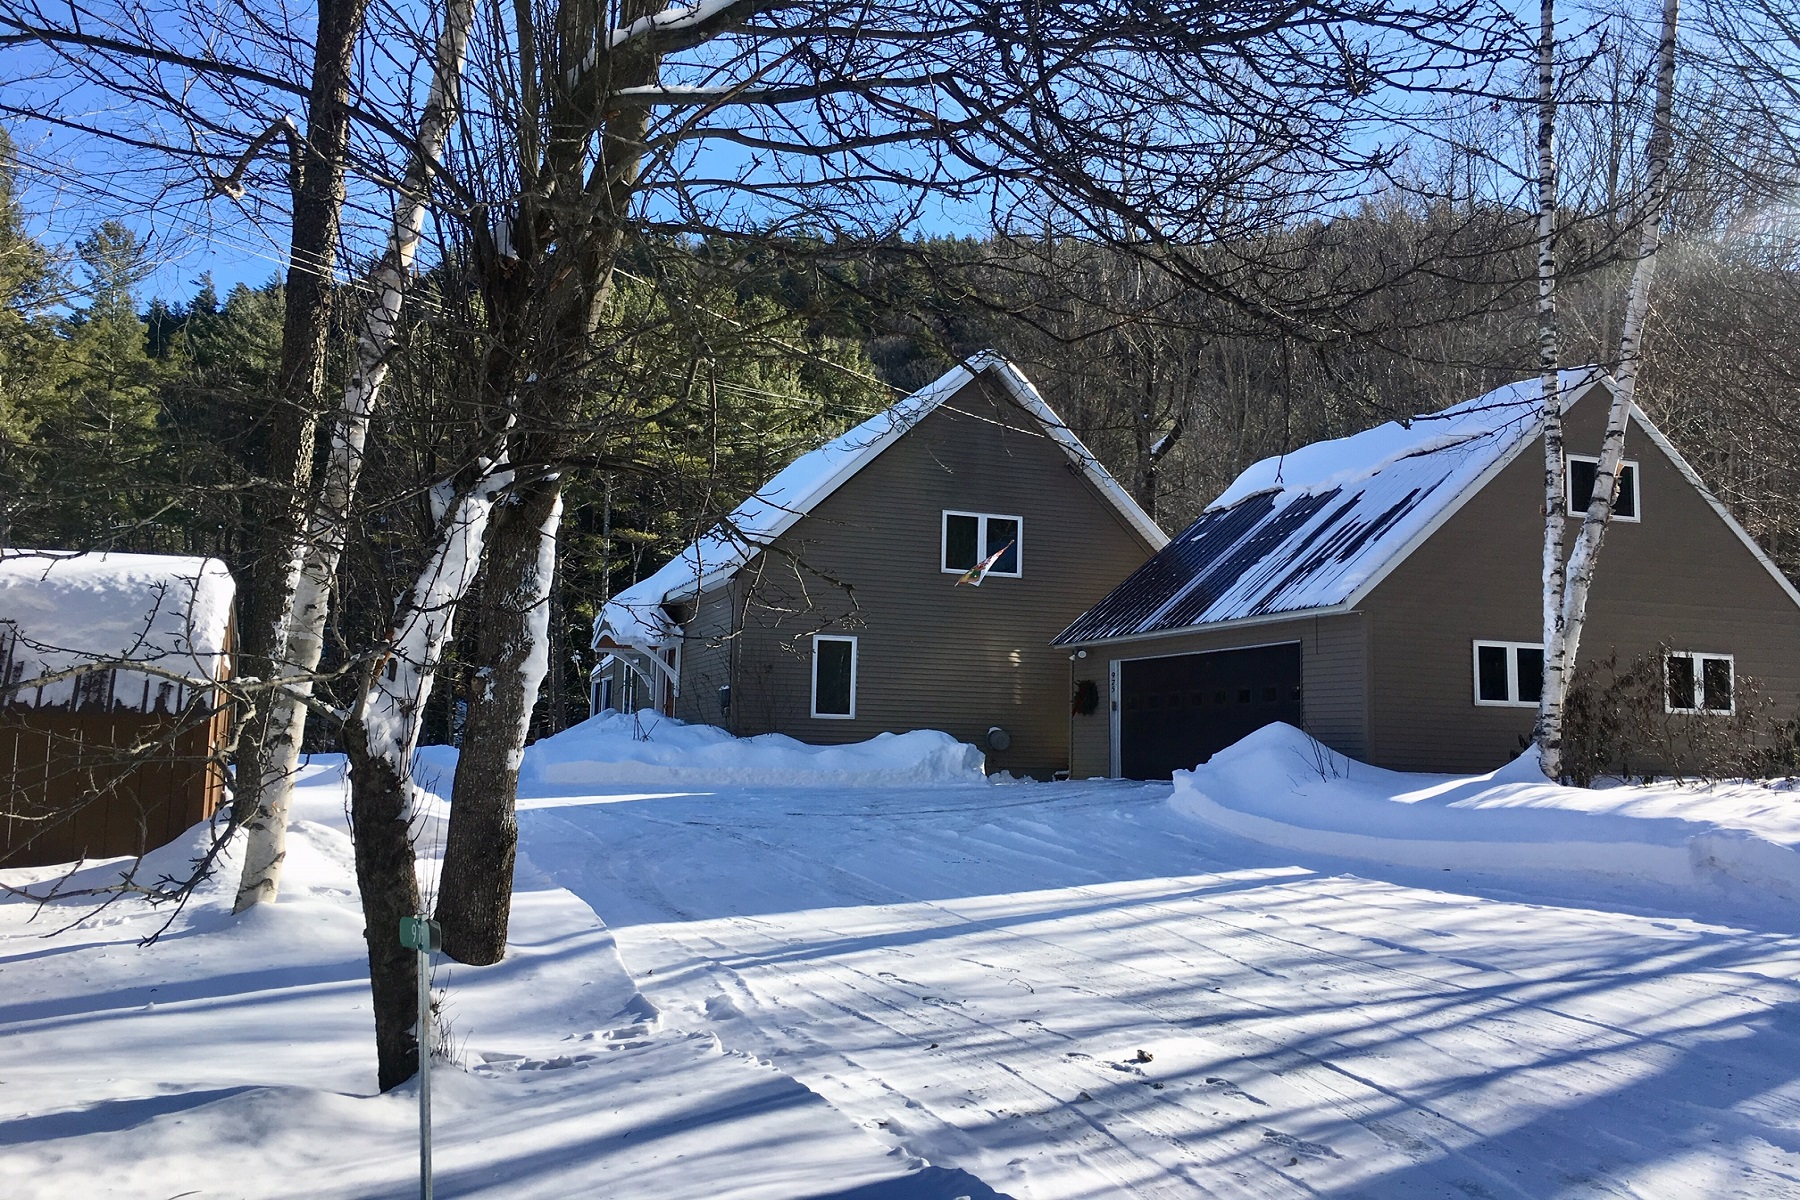 Single Family Home for Sale at Modern Cape Style Home 975 Ski Tow Road West Windsor, Vermont 05037 United States